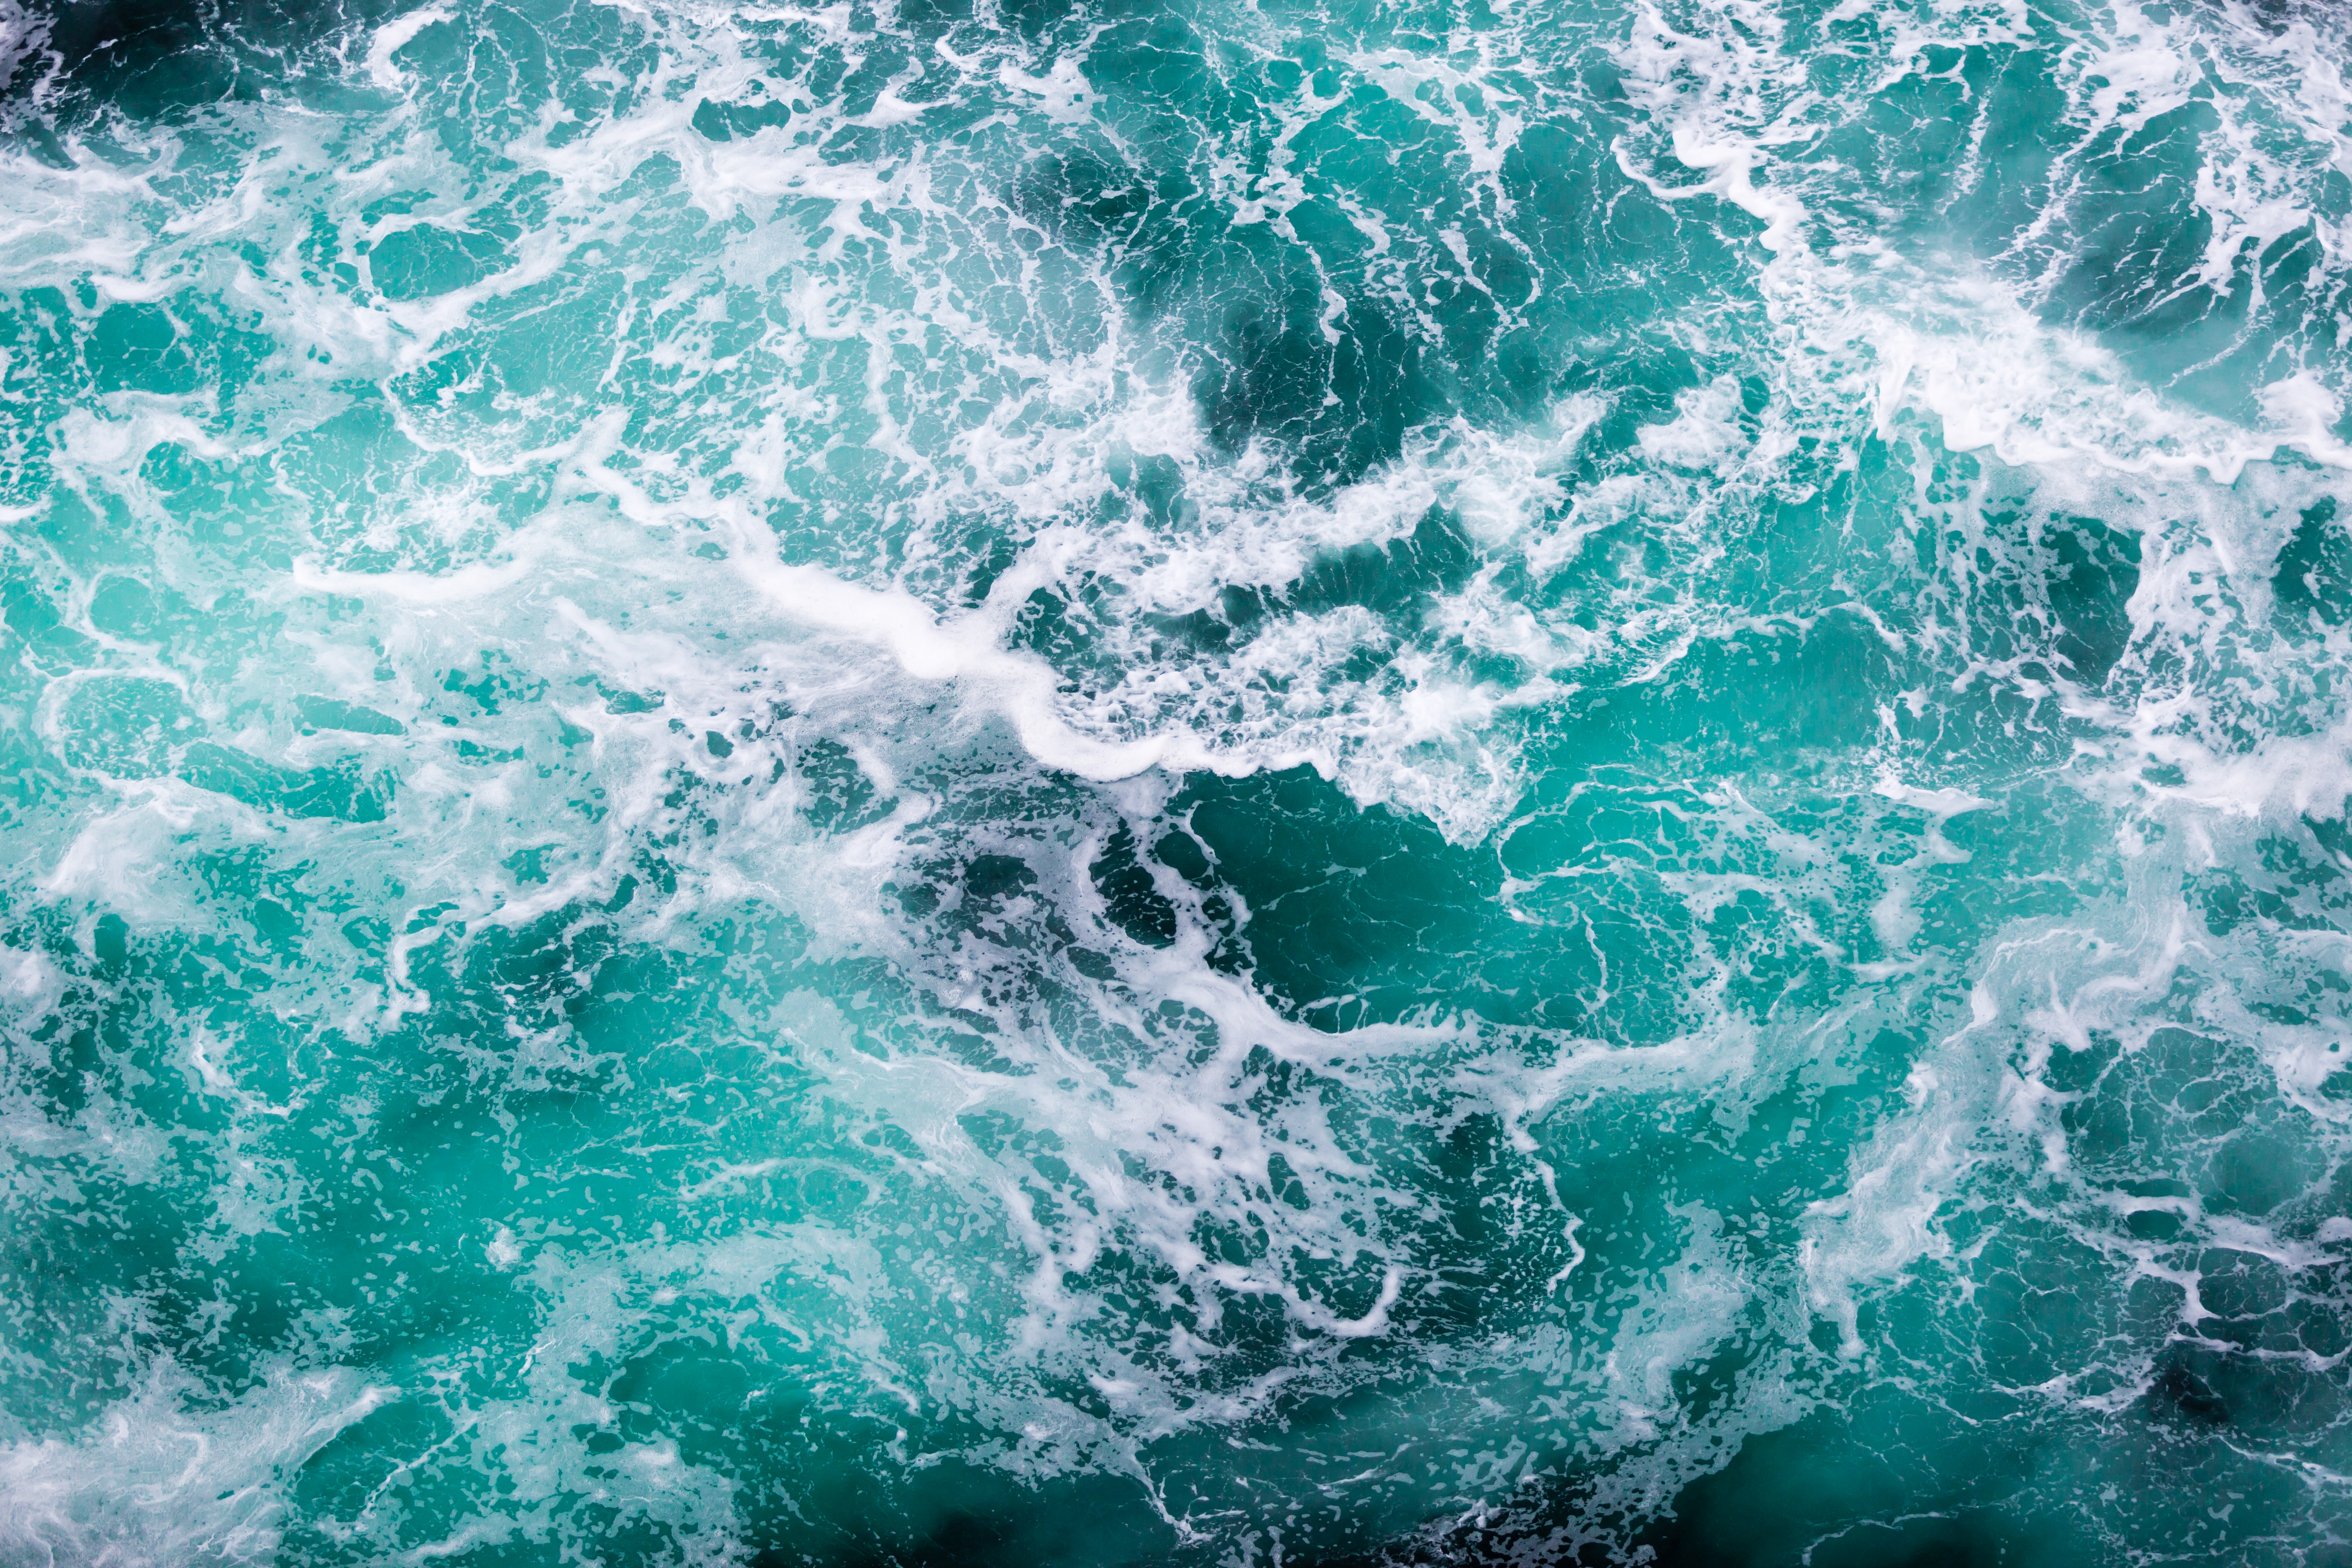 Aqua coloured waves in the water with white sea foam